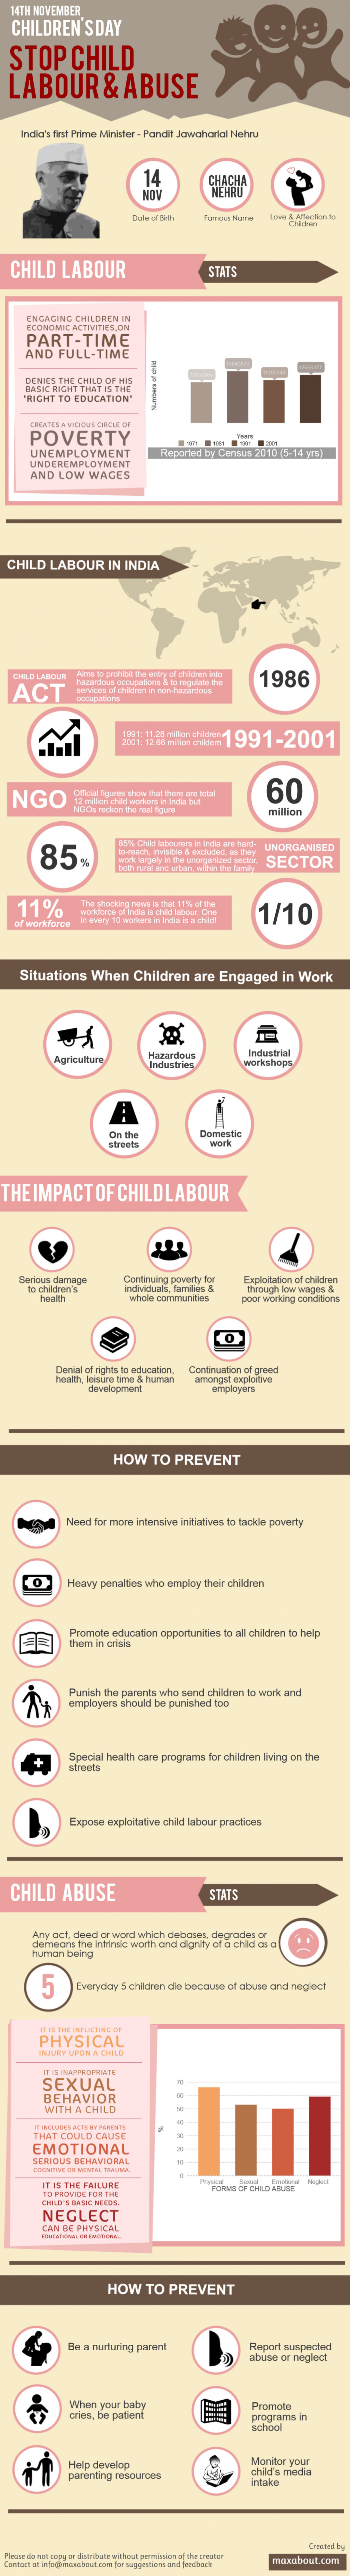 Children's Day: Stop Child Labour and Abuse Infographic